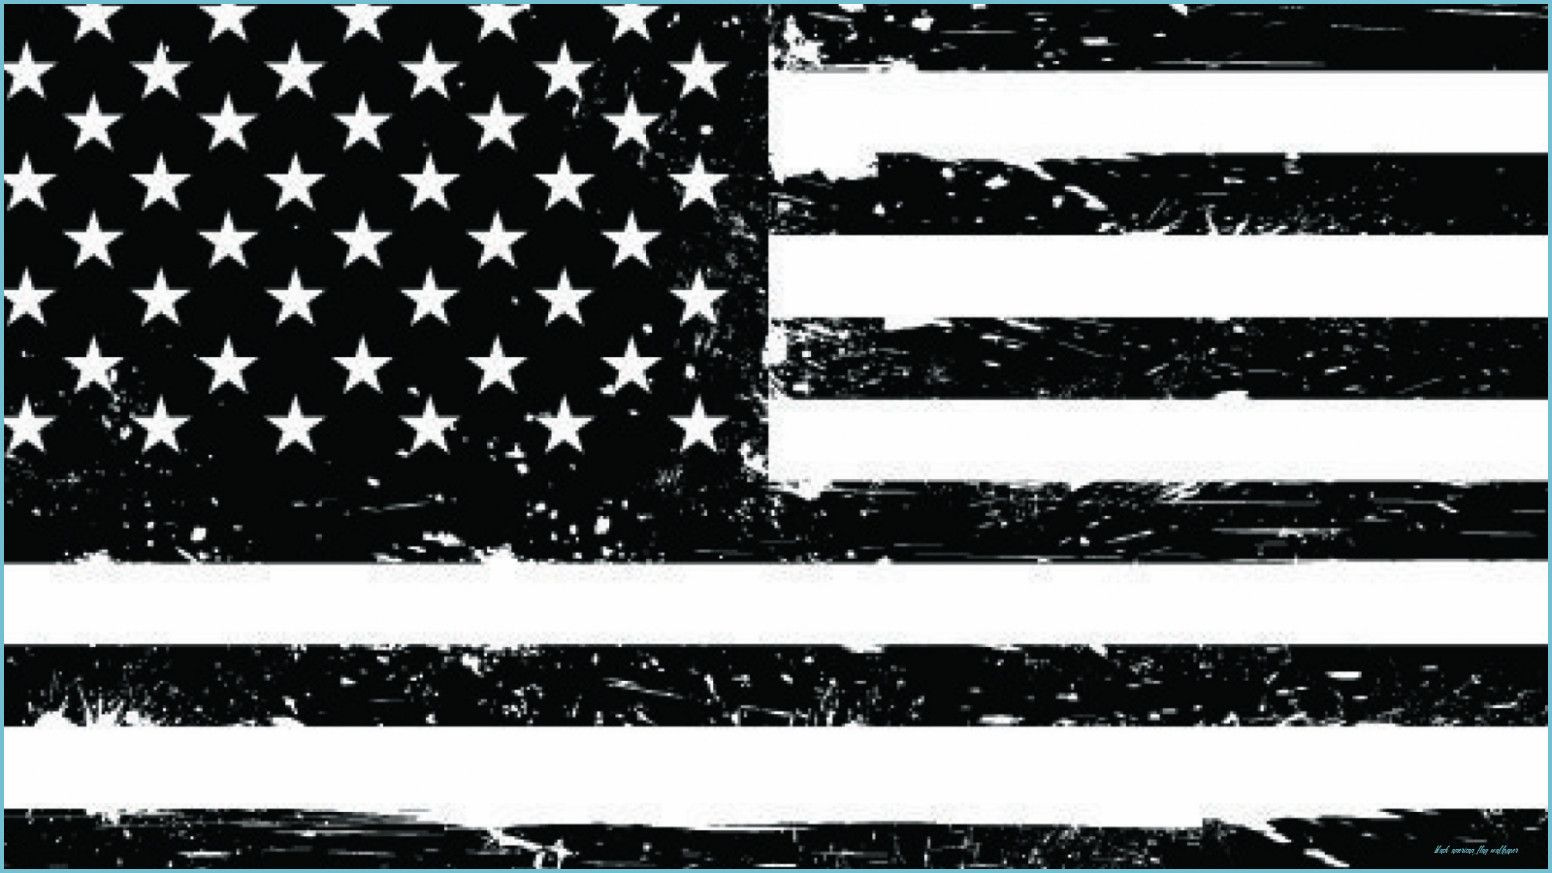 10 Top Risks Of Attending Black American Flag Wallpaper Black American Flag Wallpaper In 2020 American Flag Wallpaper Black American Flag Cool American Flag